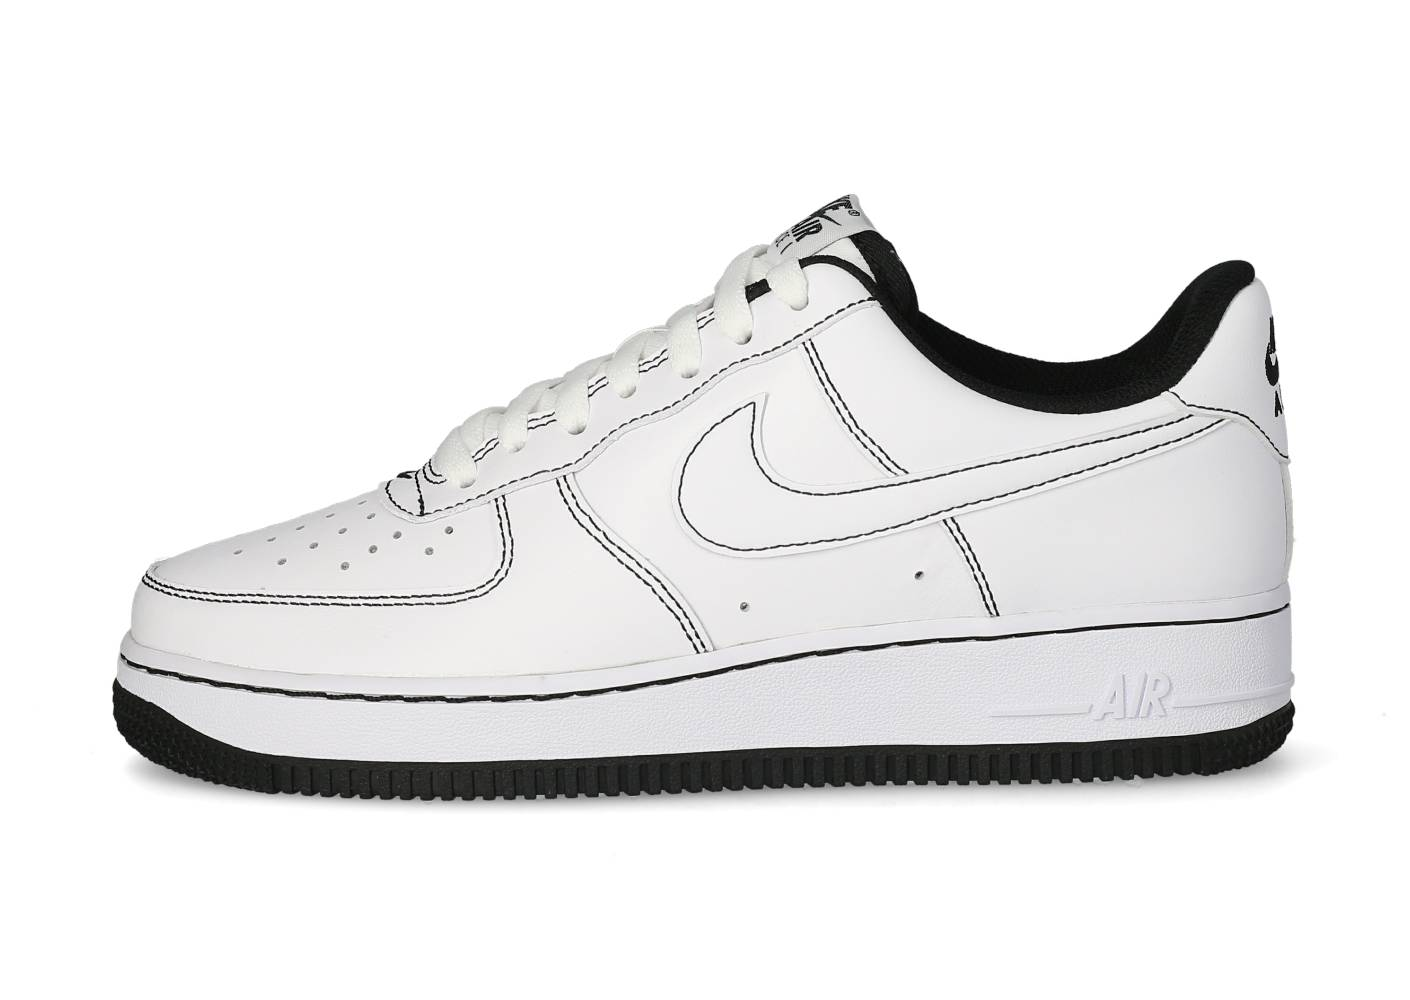 Nike Homme Air Force 1 '07 Low Contrast Stitch Baskets 41